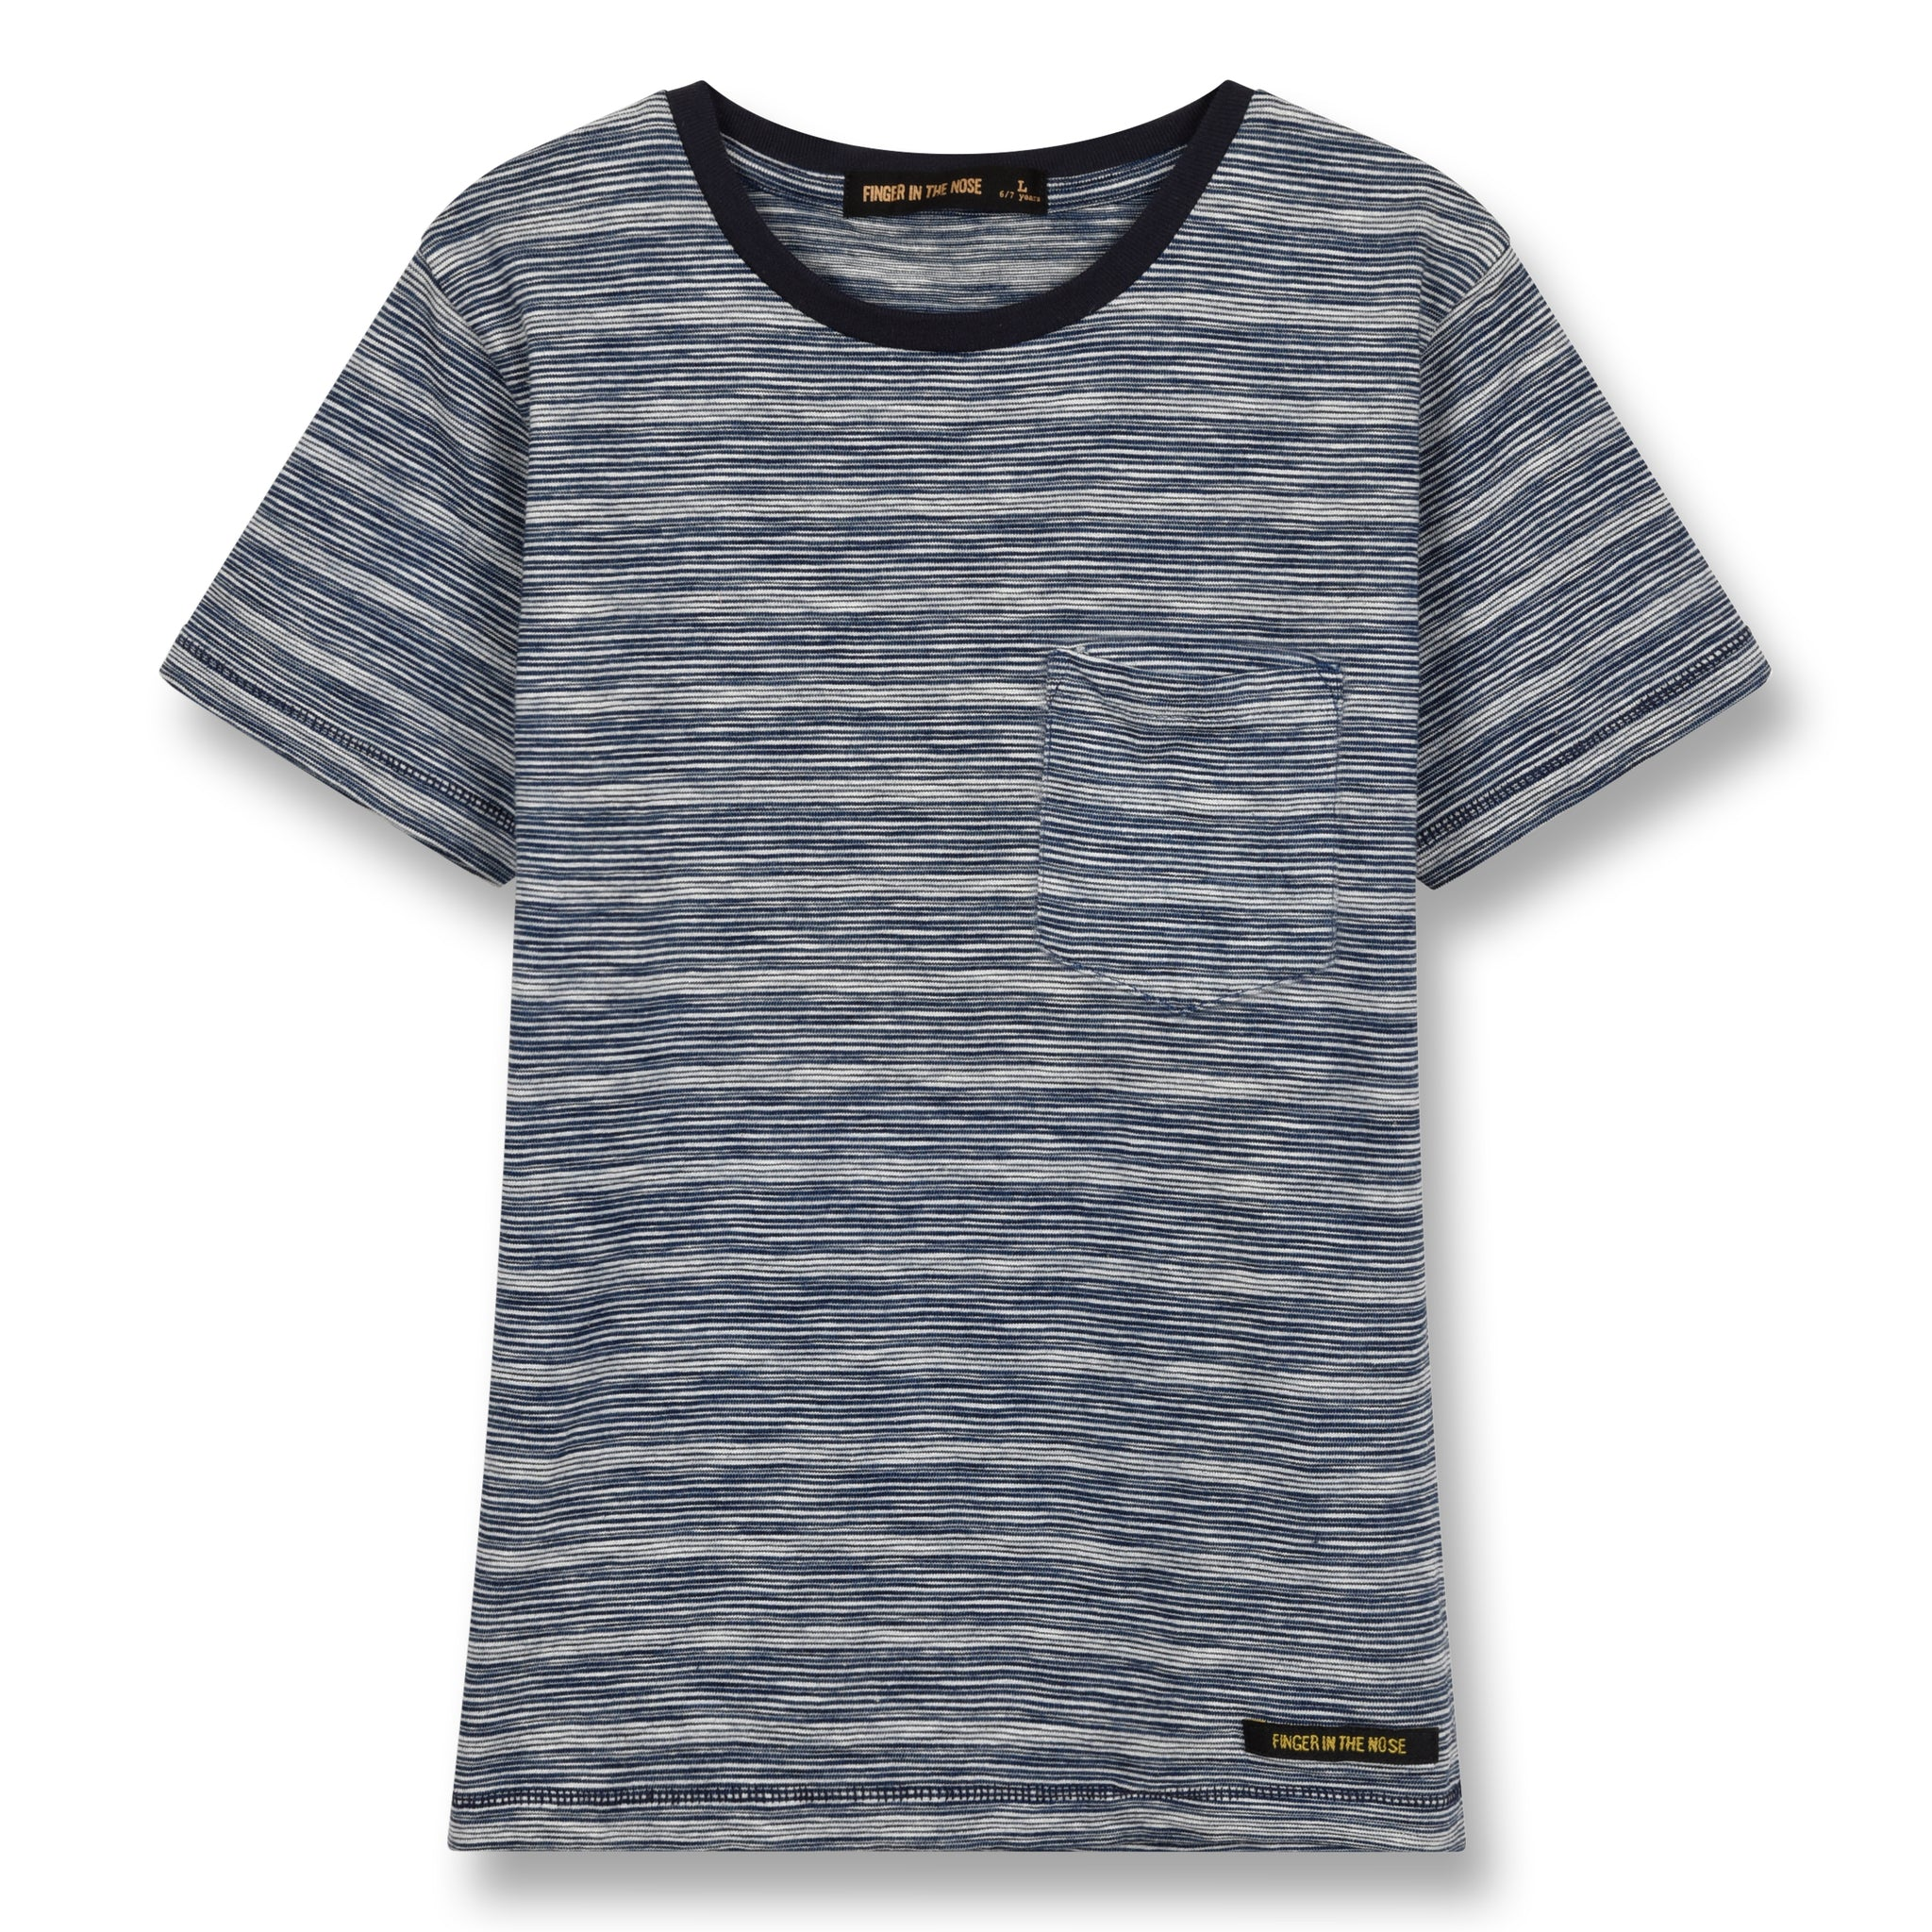 DALTON Kraft Stripes - Short Sleeves T-Shirt 1